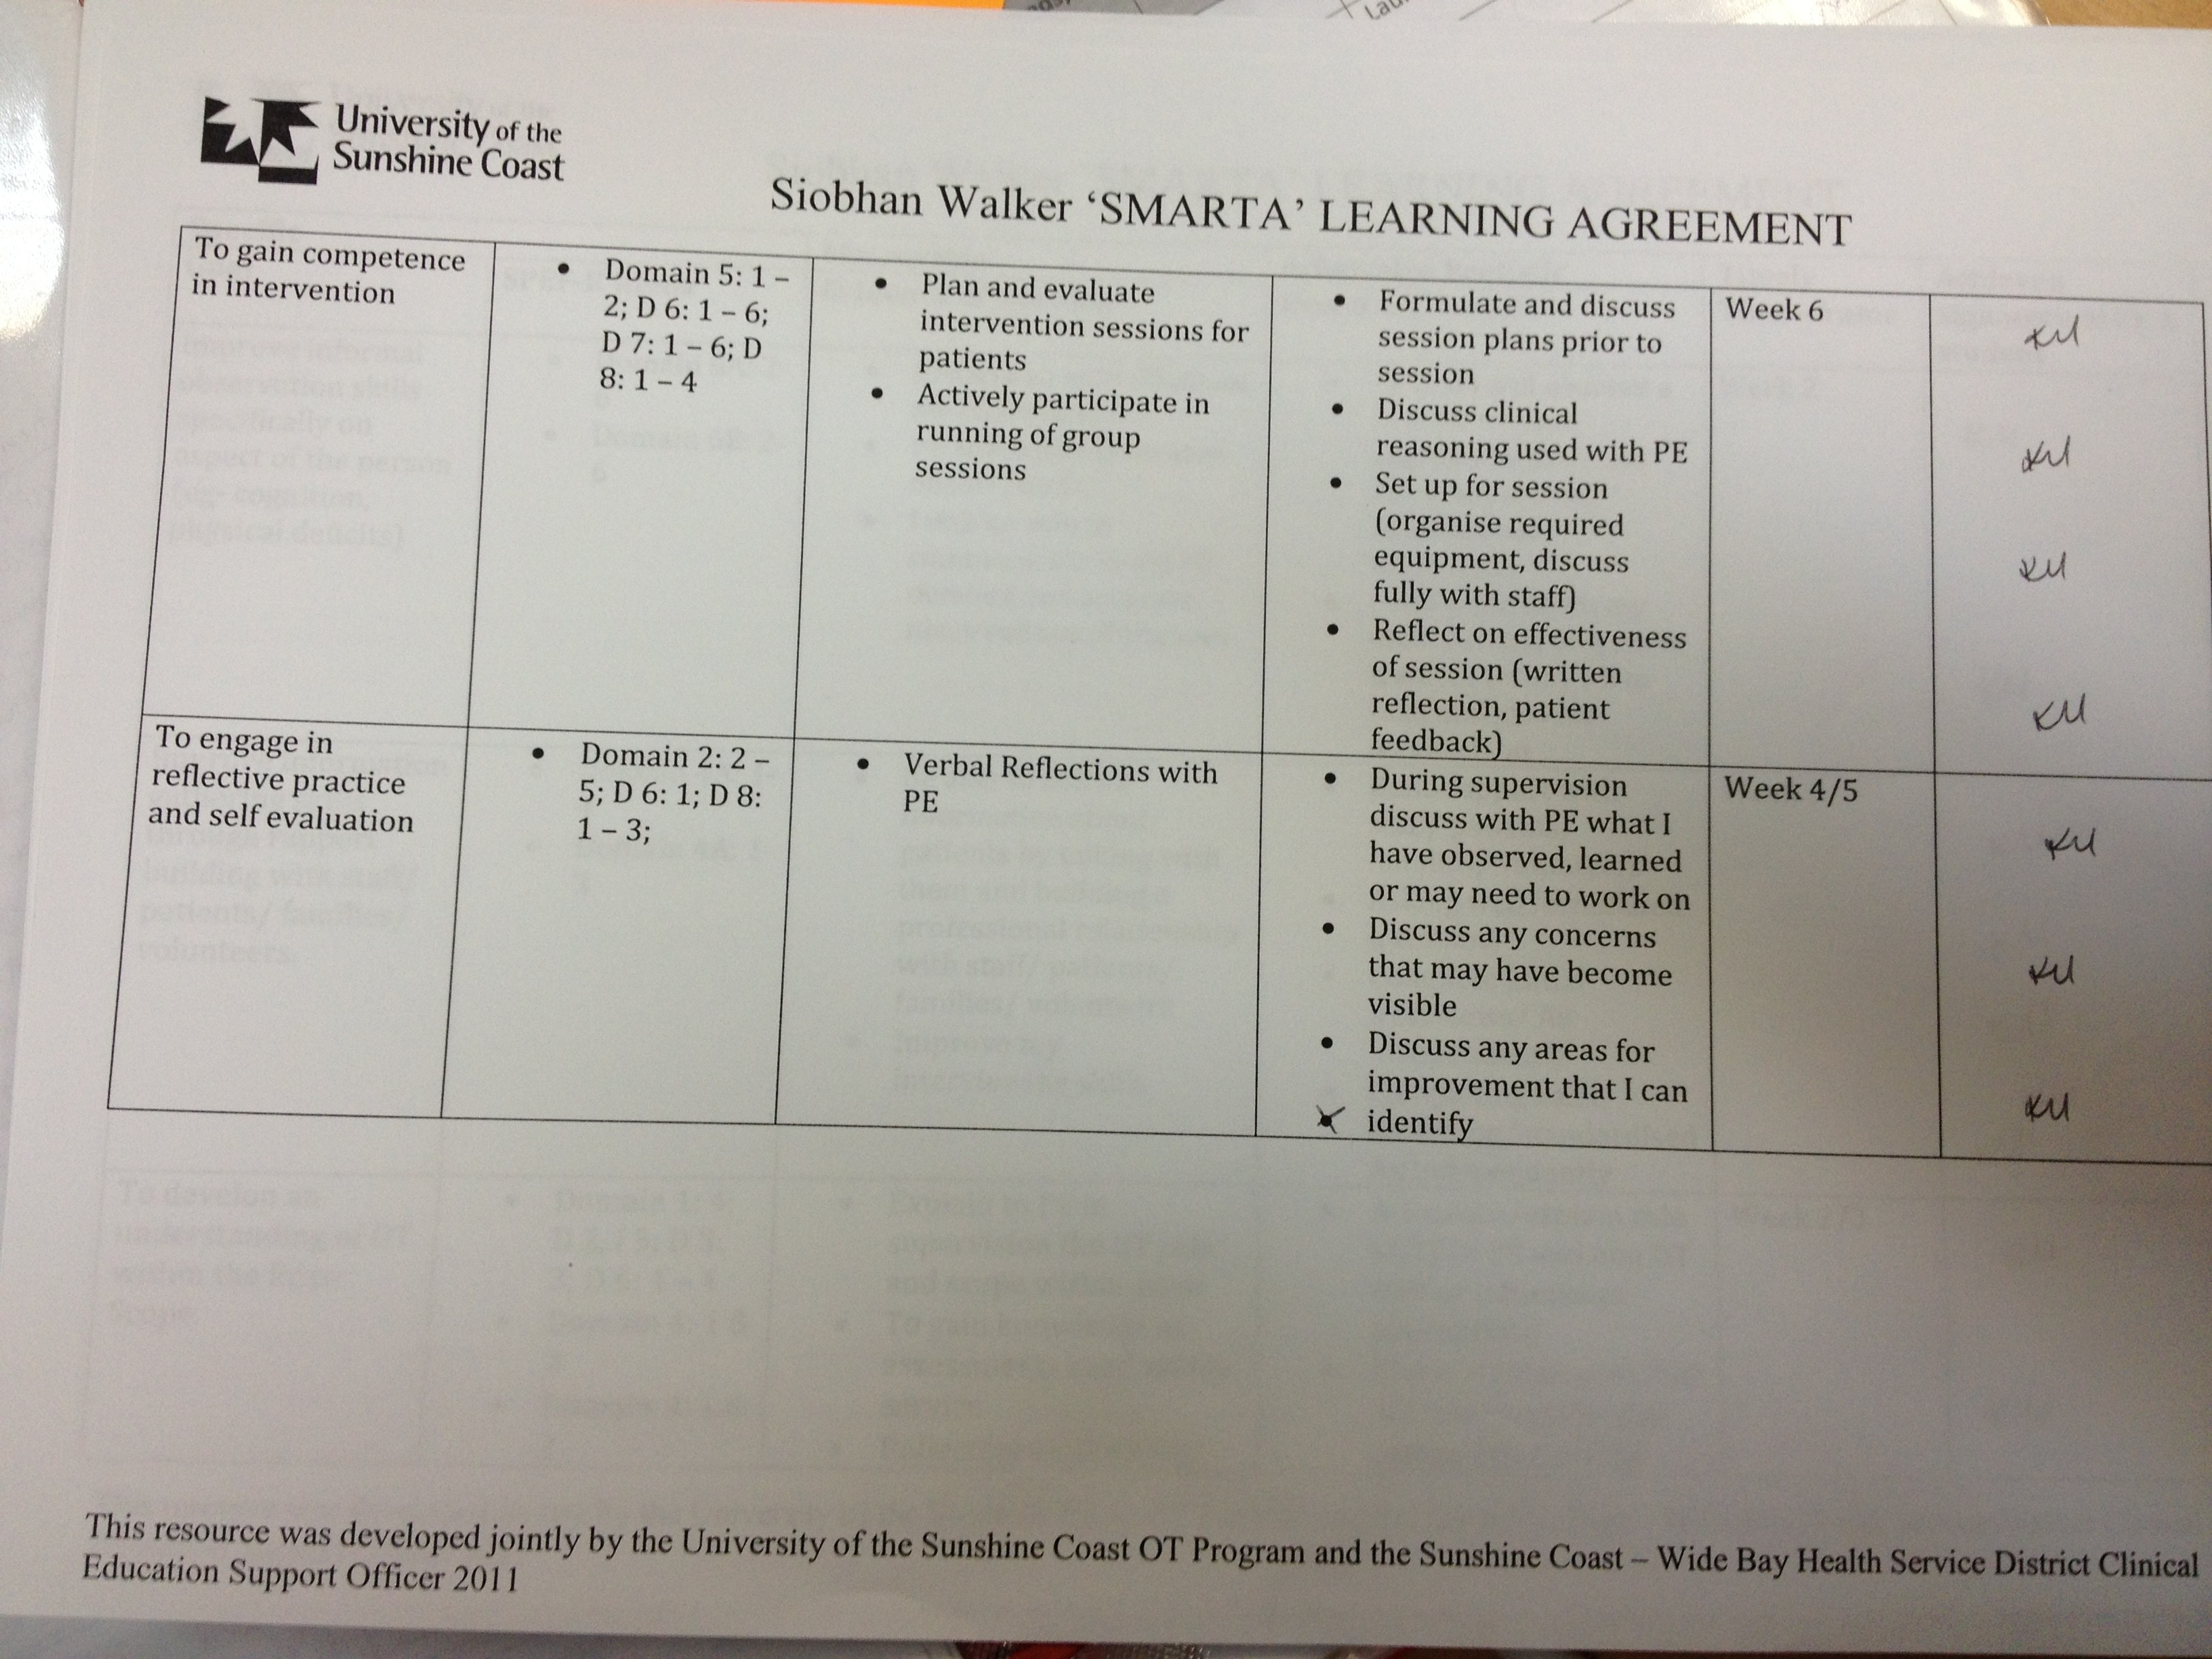 EXAMPLE SMARTA Learning Agreement Goals Siobhan Walker